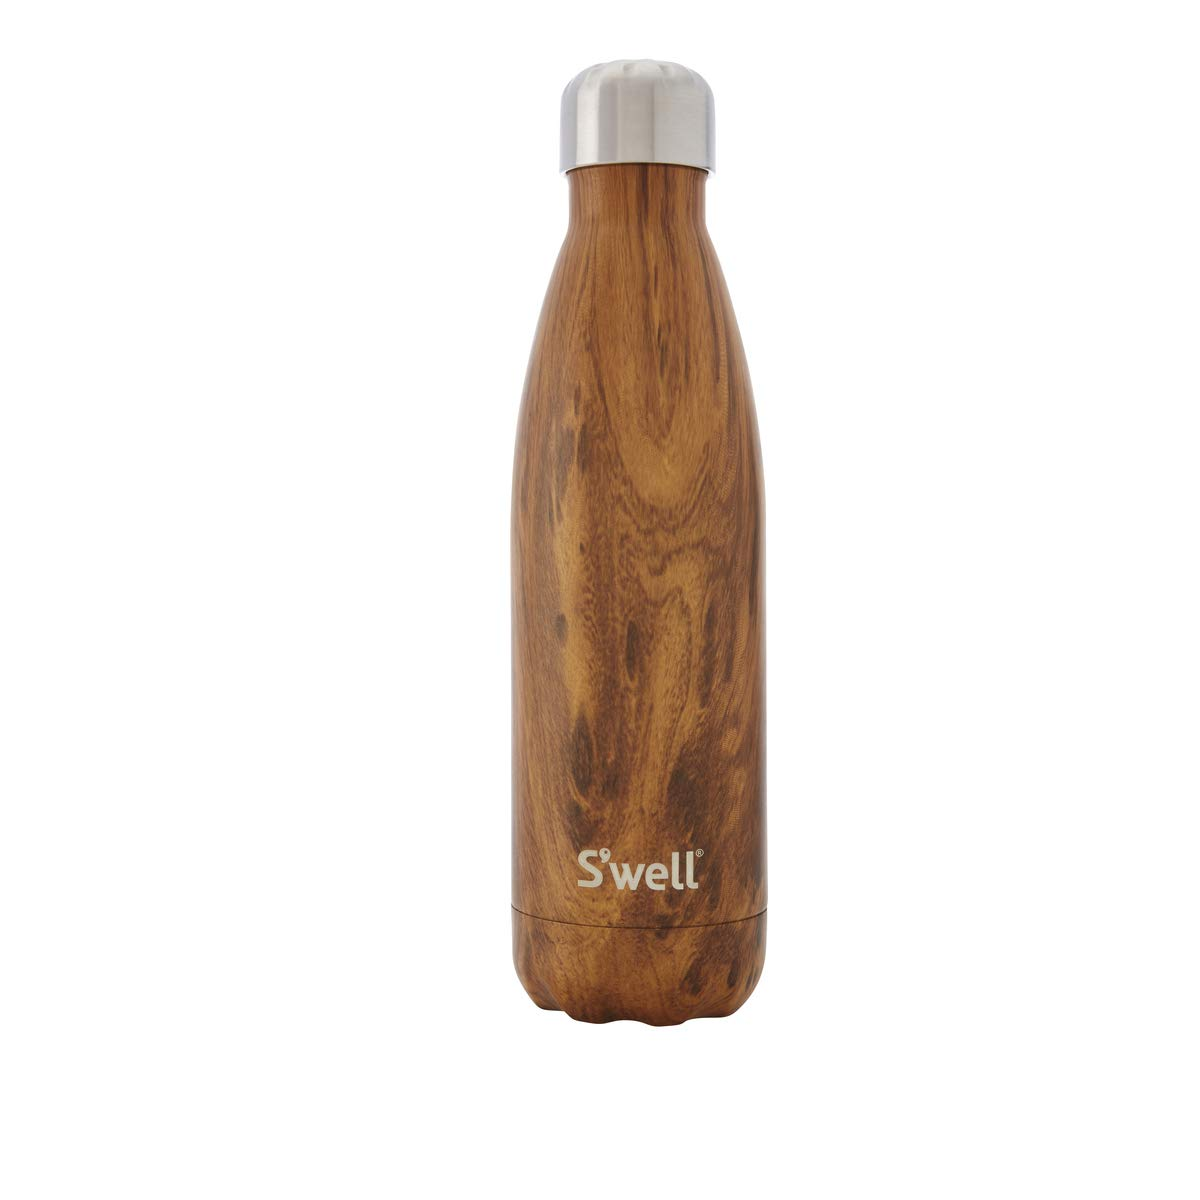 S'well Vacuum Insulated Stainless Steel Water Bottle, 17 oz, Teakwood